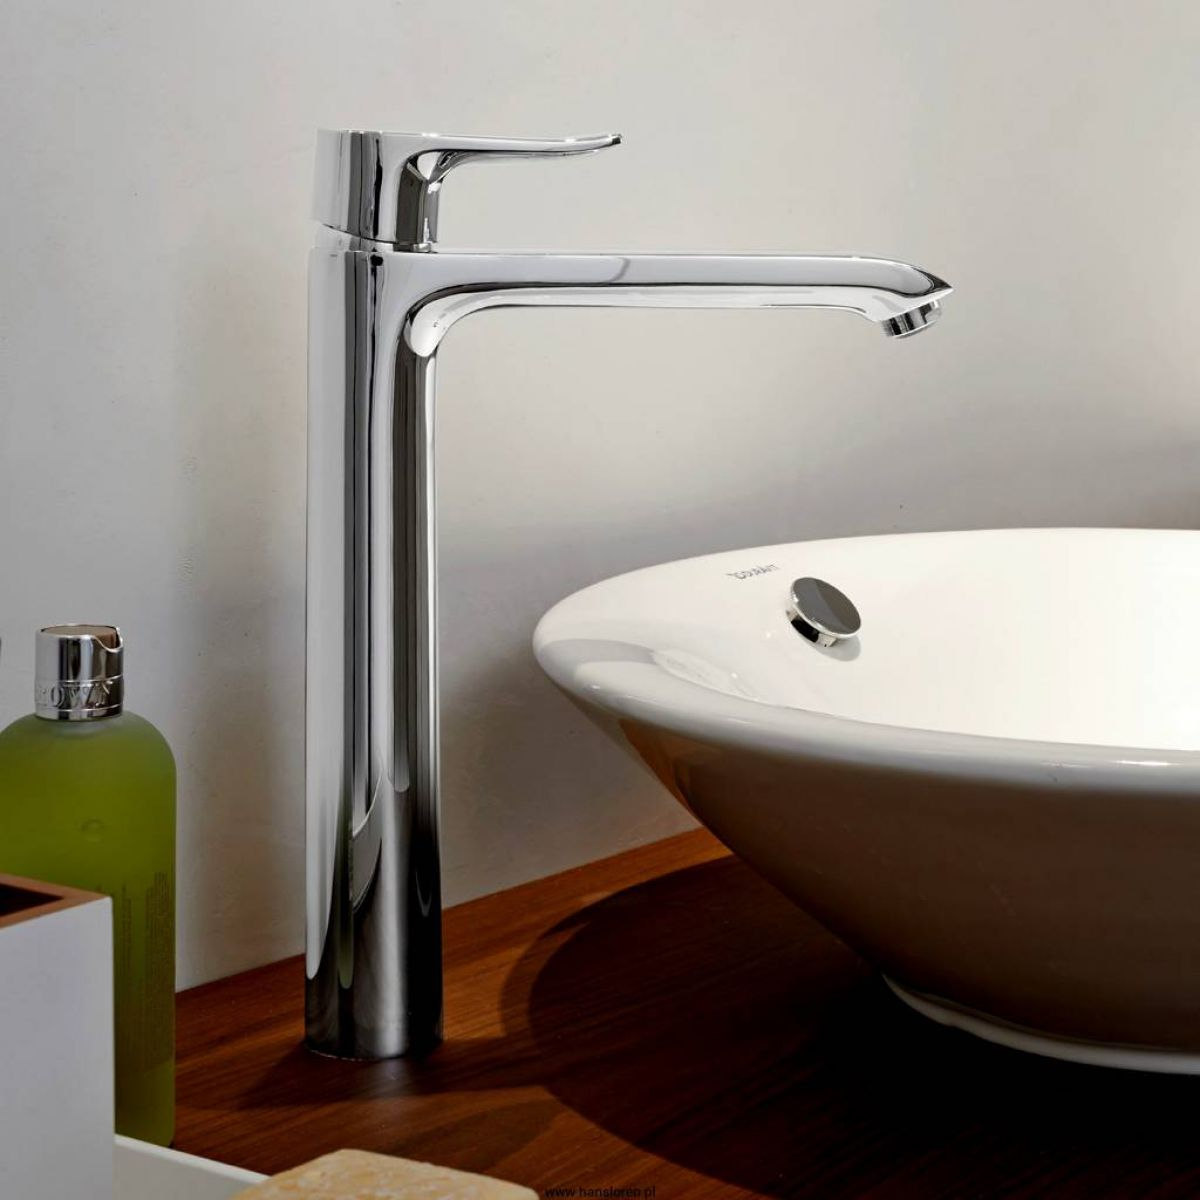 hansgrohe metris single lever tall basin mixer 260 uk bathrooms. Black Bedroom Furniture Sets. Home Design Ideas